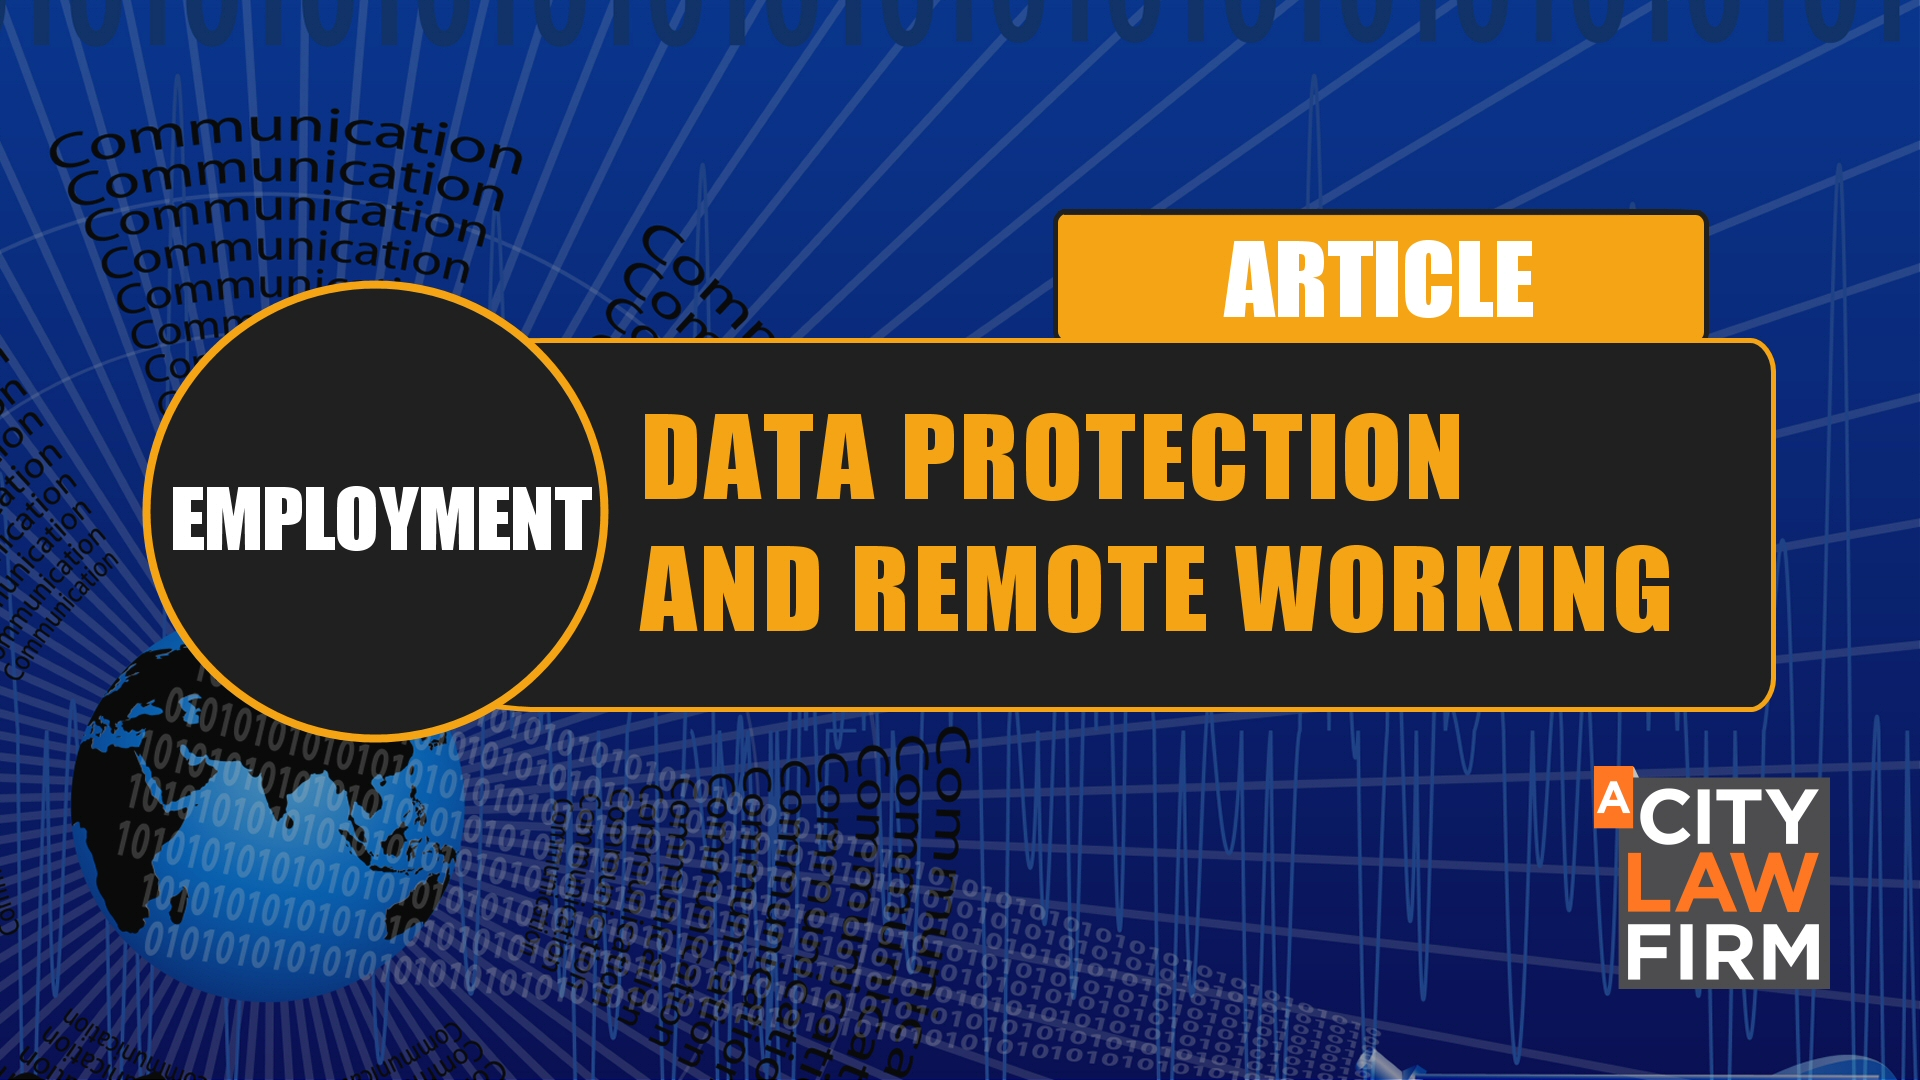 Data Protection and Remote Working